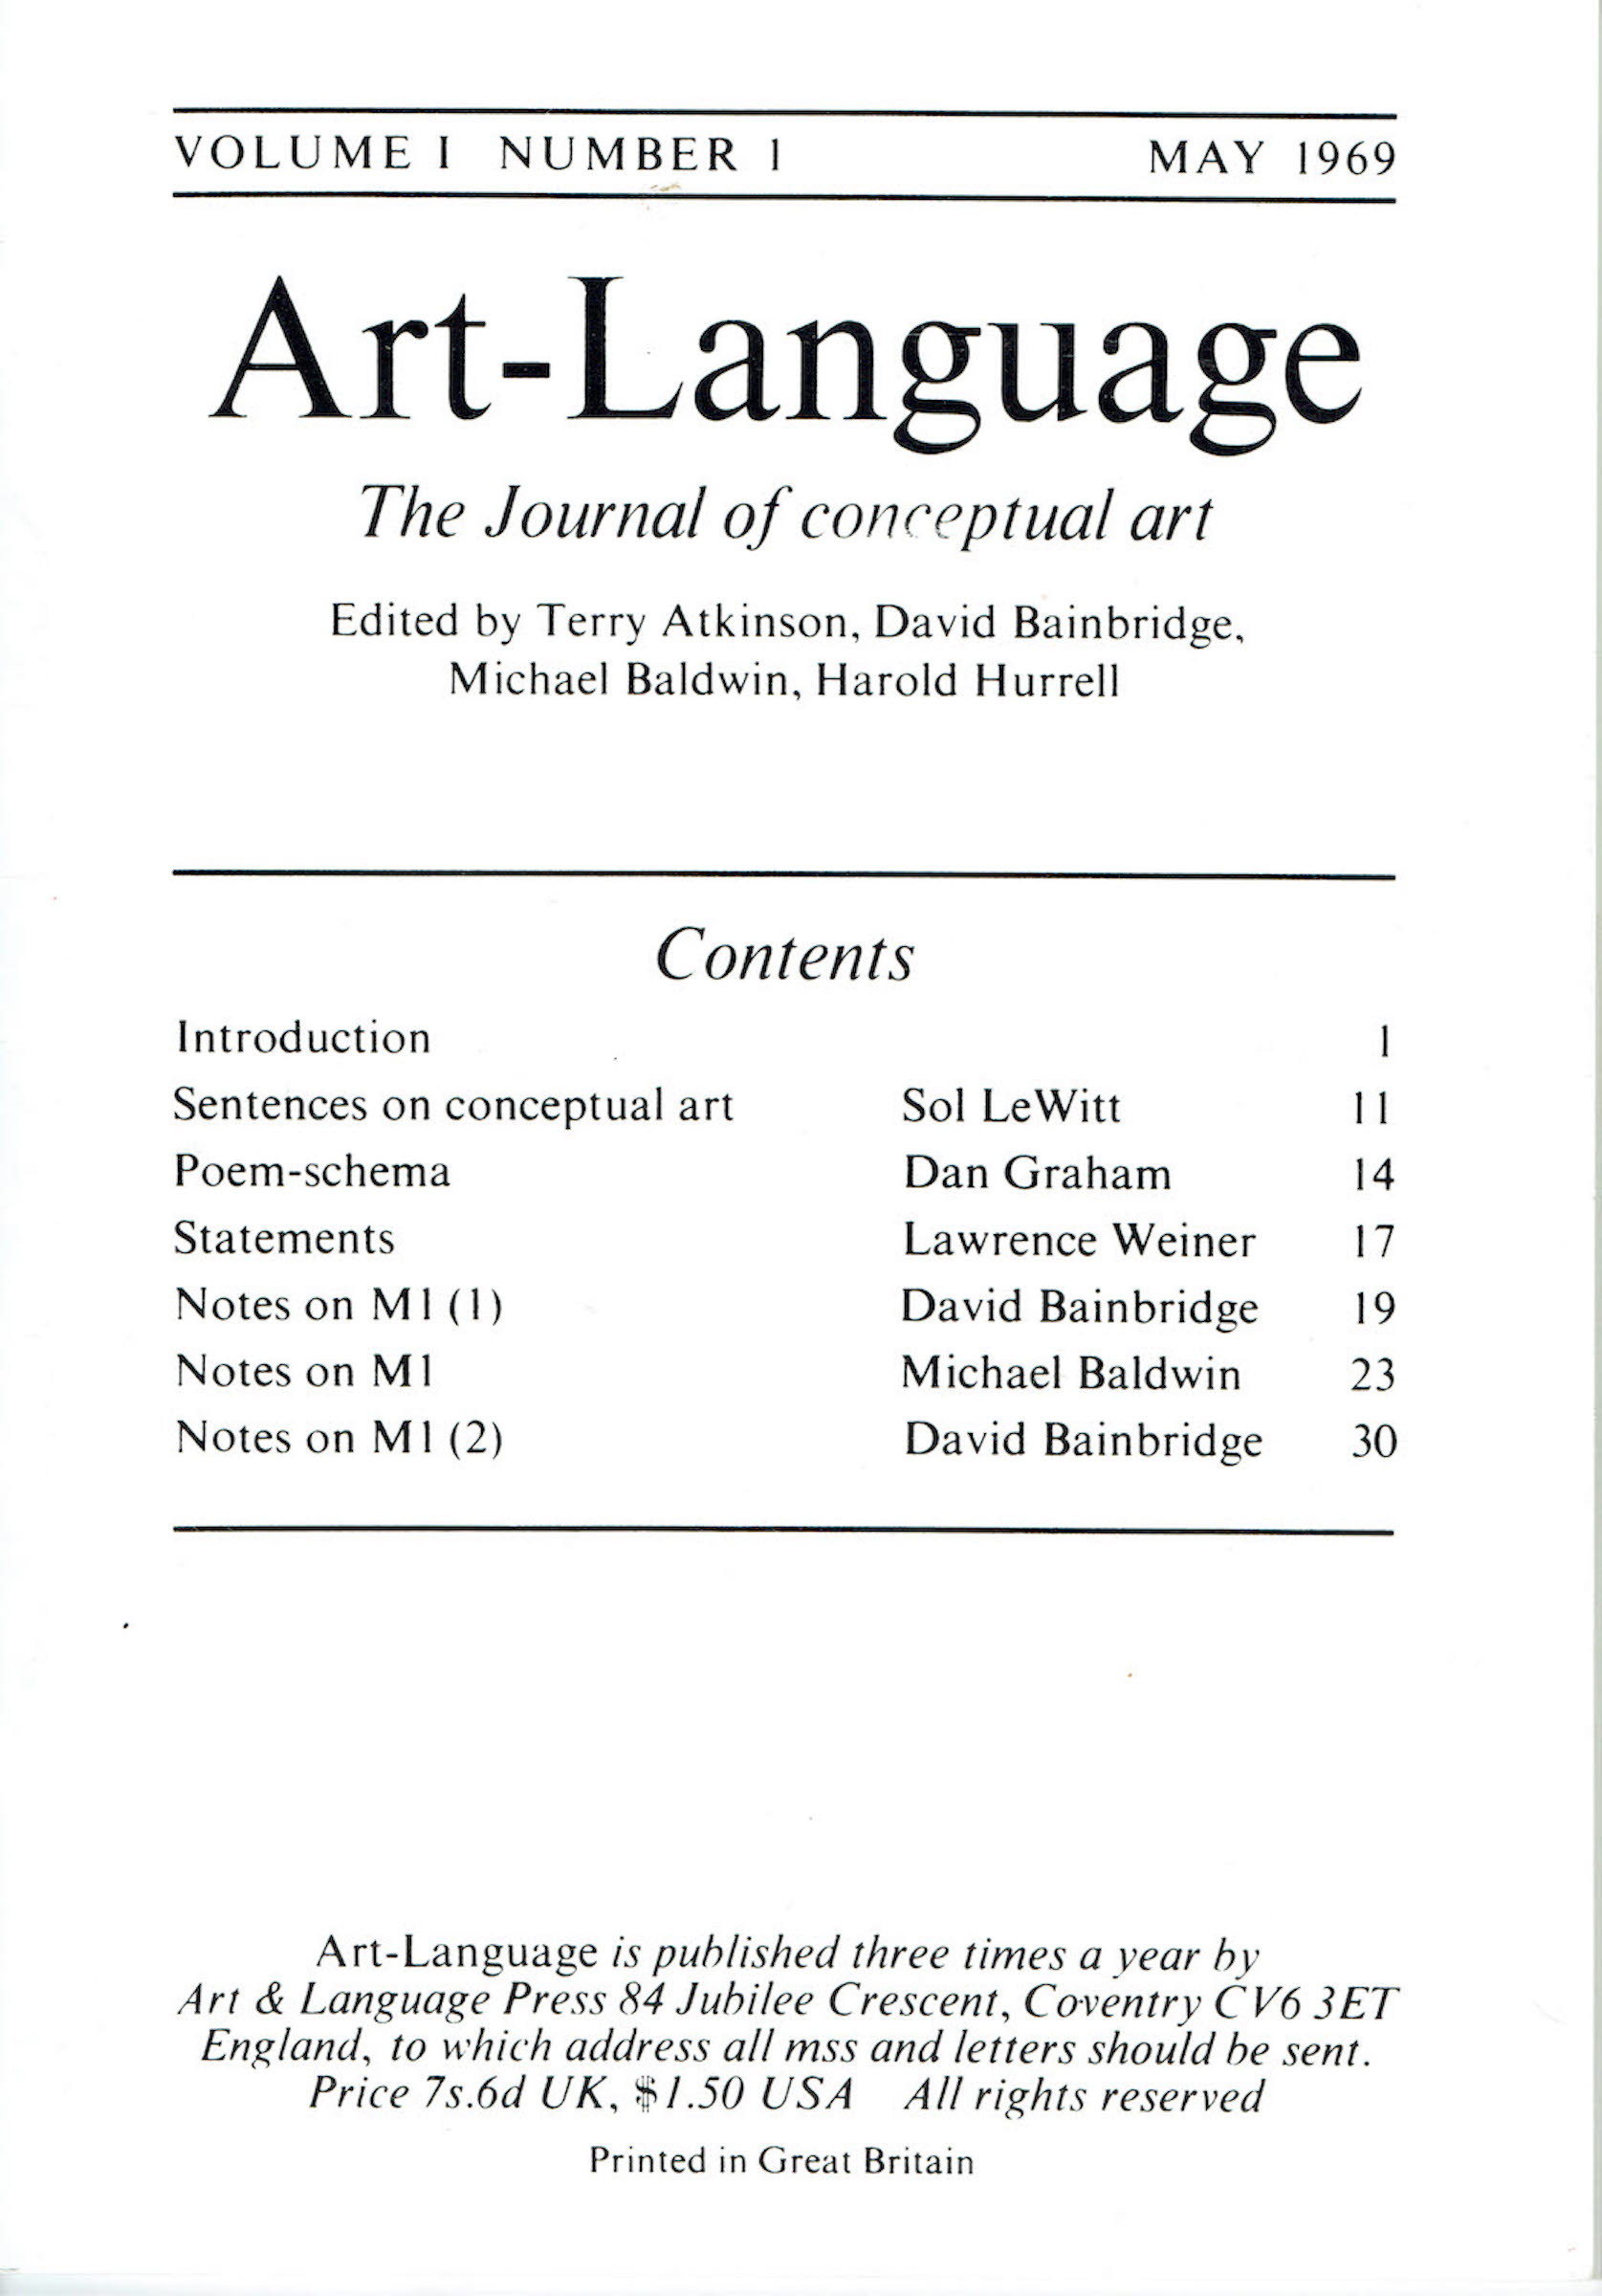 Issue 1 of Art-Language: The Journal of Conceptual Art. Courtesy of Philippe Méaille.